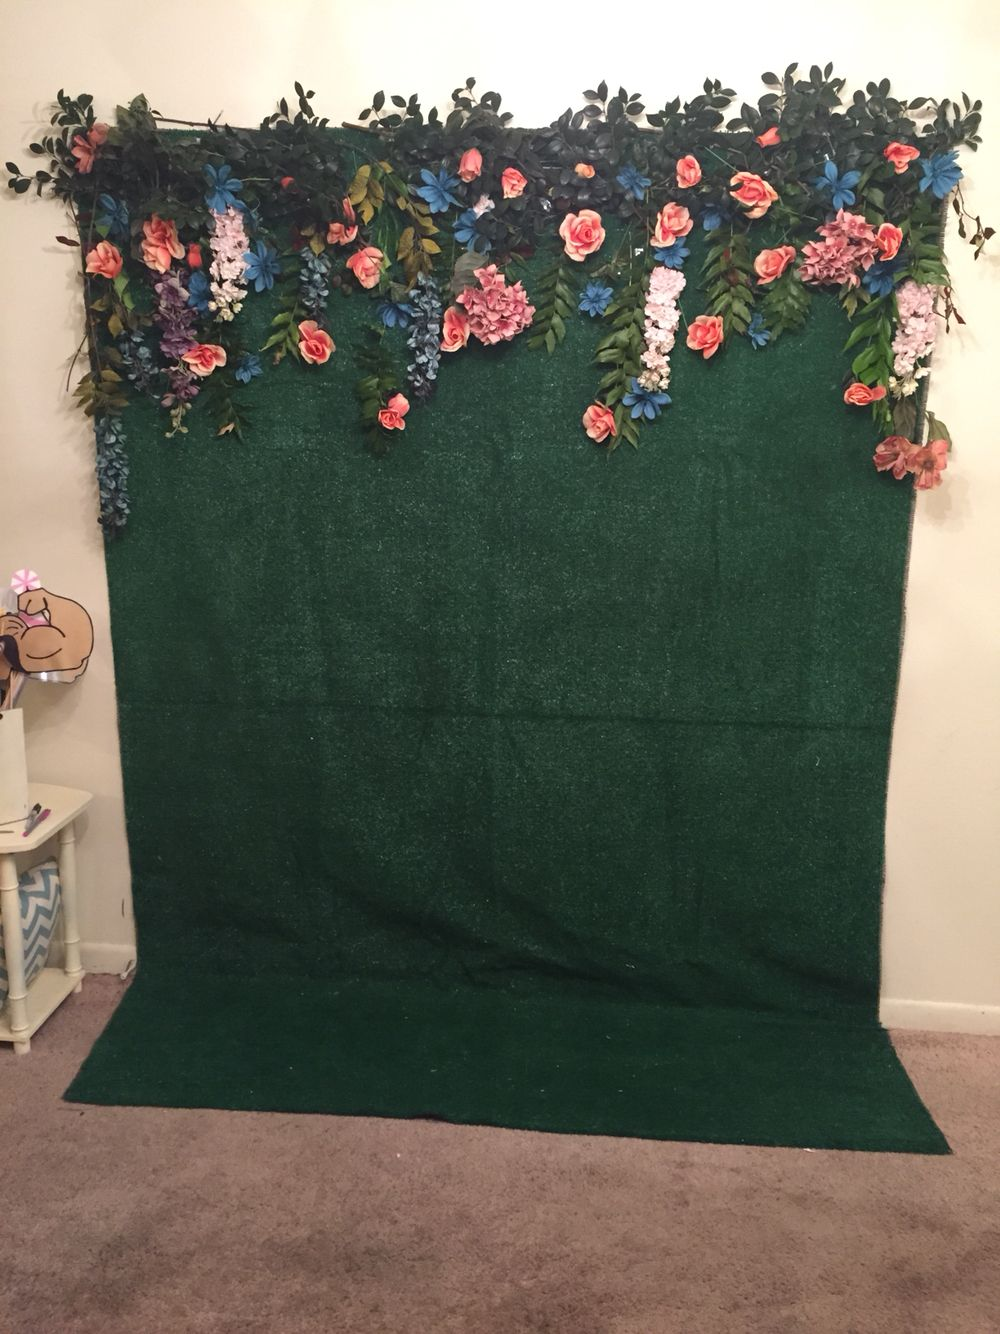 This was a photo booth backdrop I made using green turf